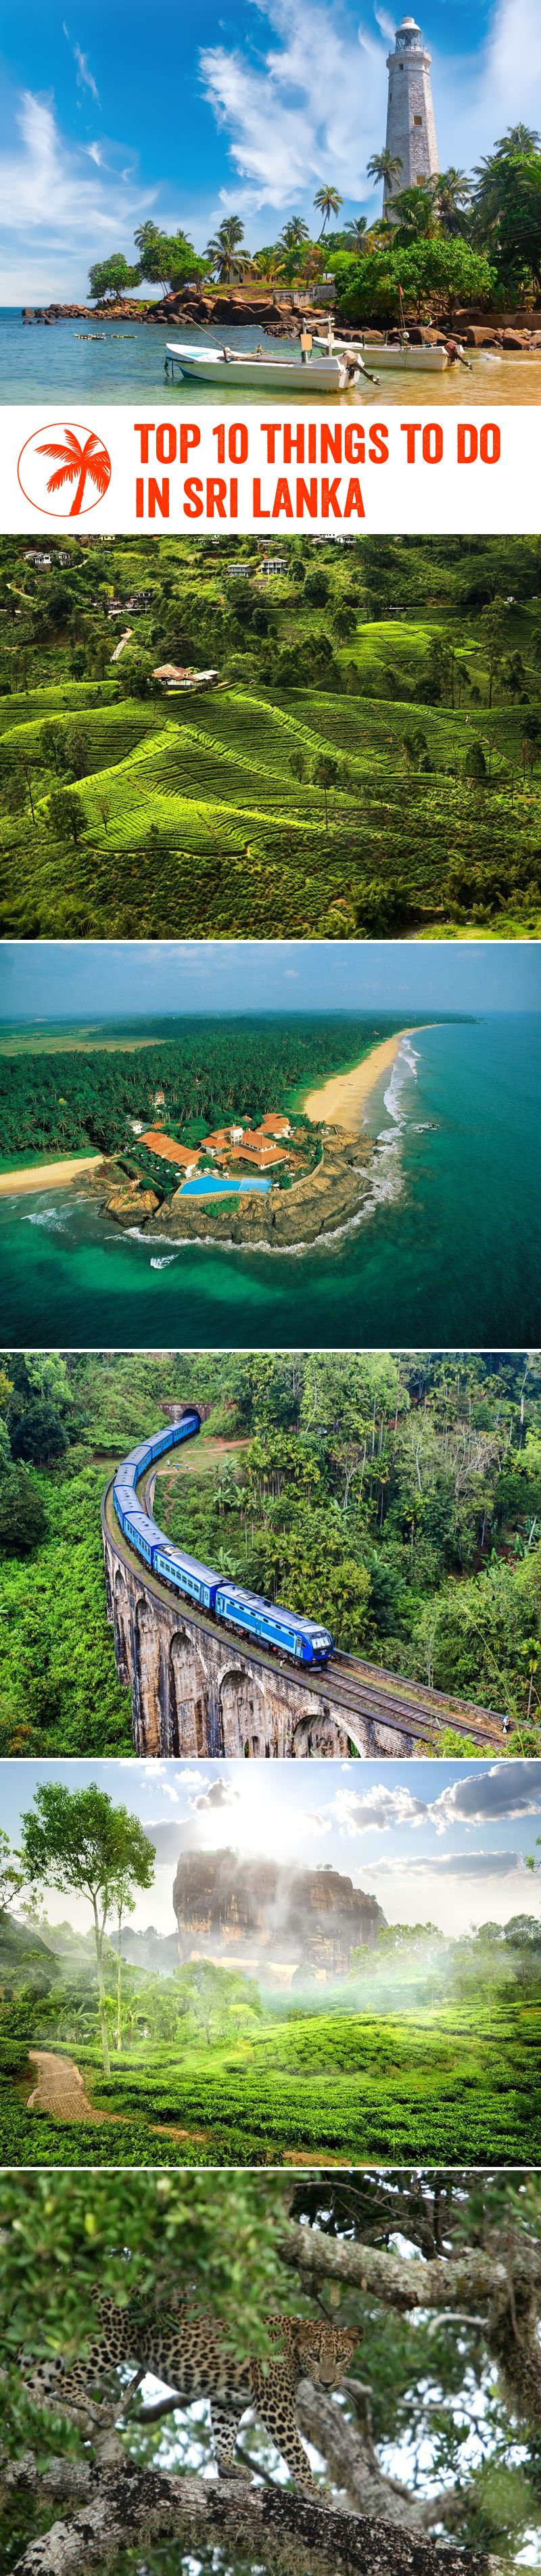 Top 10 things to do in srilanka (With images) Things to